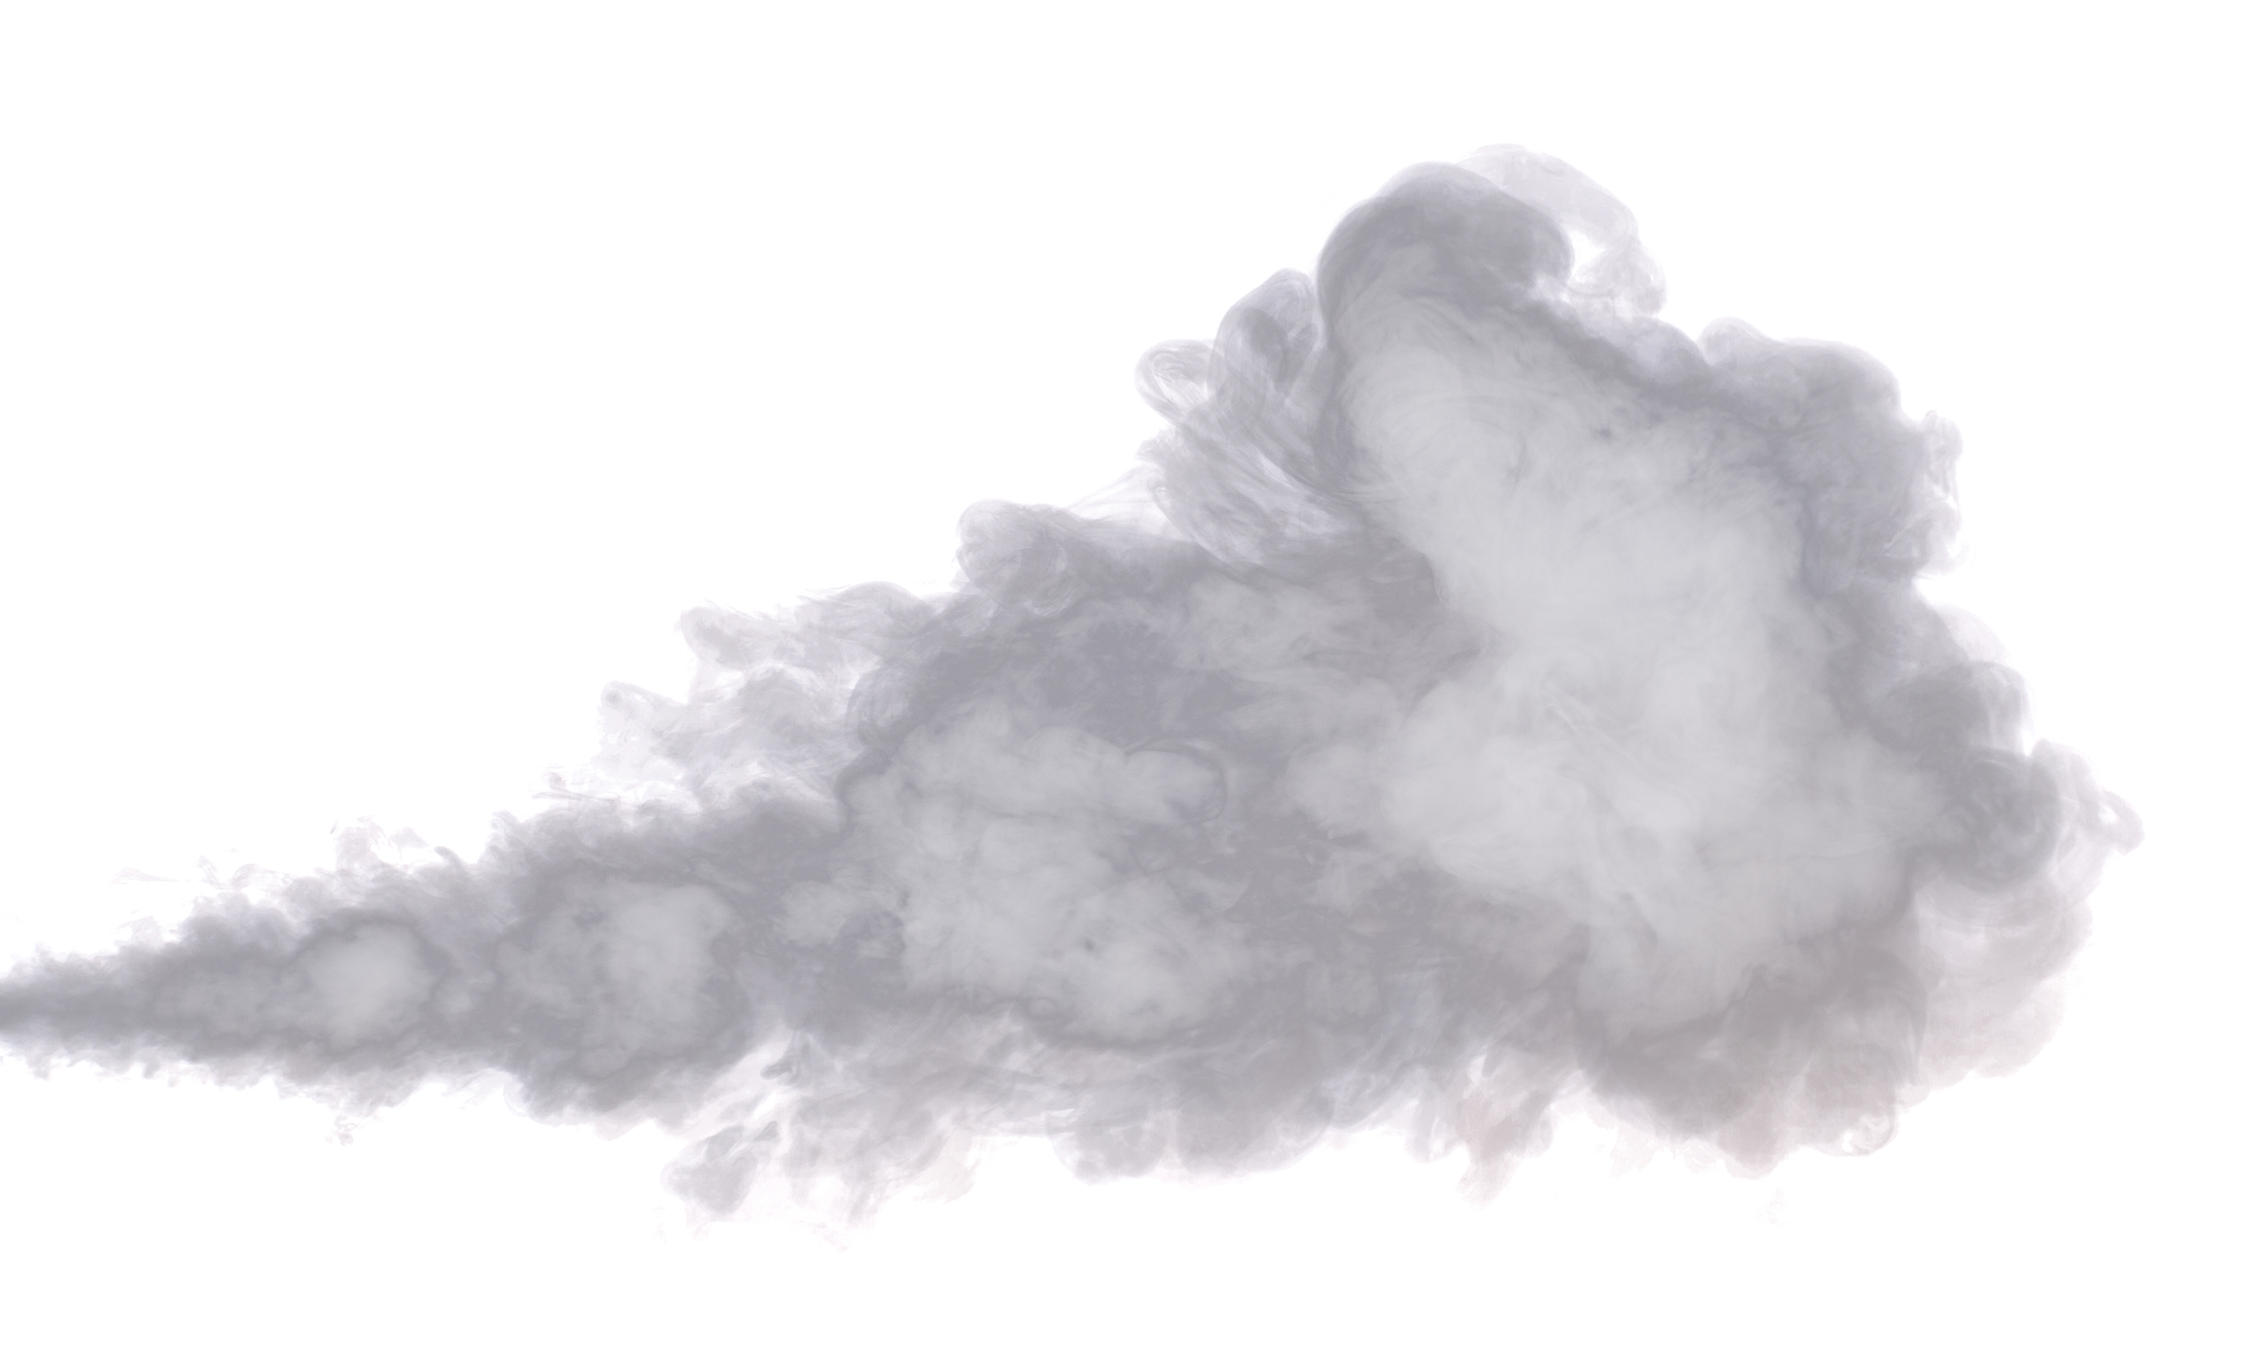 Fog clipart transparent background cloud. Smoke png image purepng